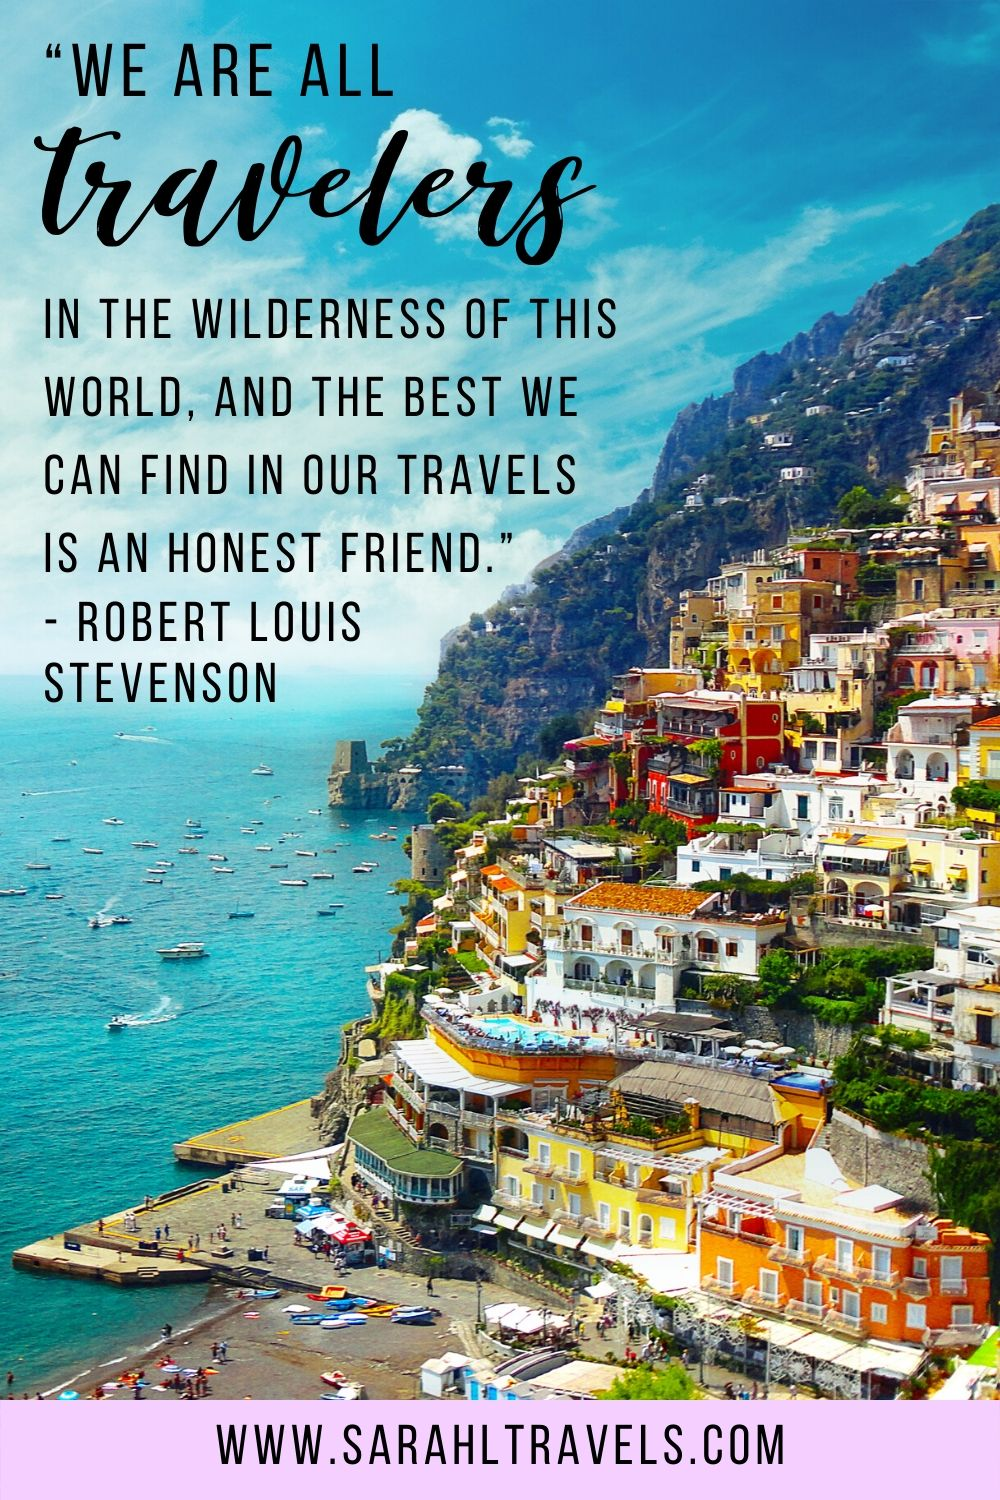 """Colorful buildings on the Amalfi Coast in Italy with quote """"We are all travelers in the wilderness of this world, and the best we can find in our travels is an honest friend."""""""